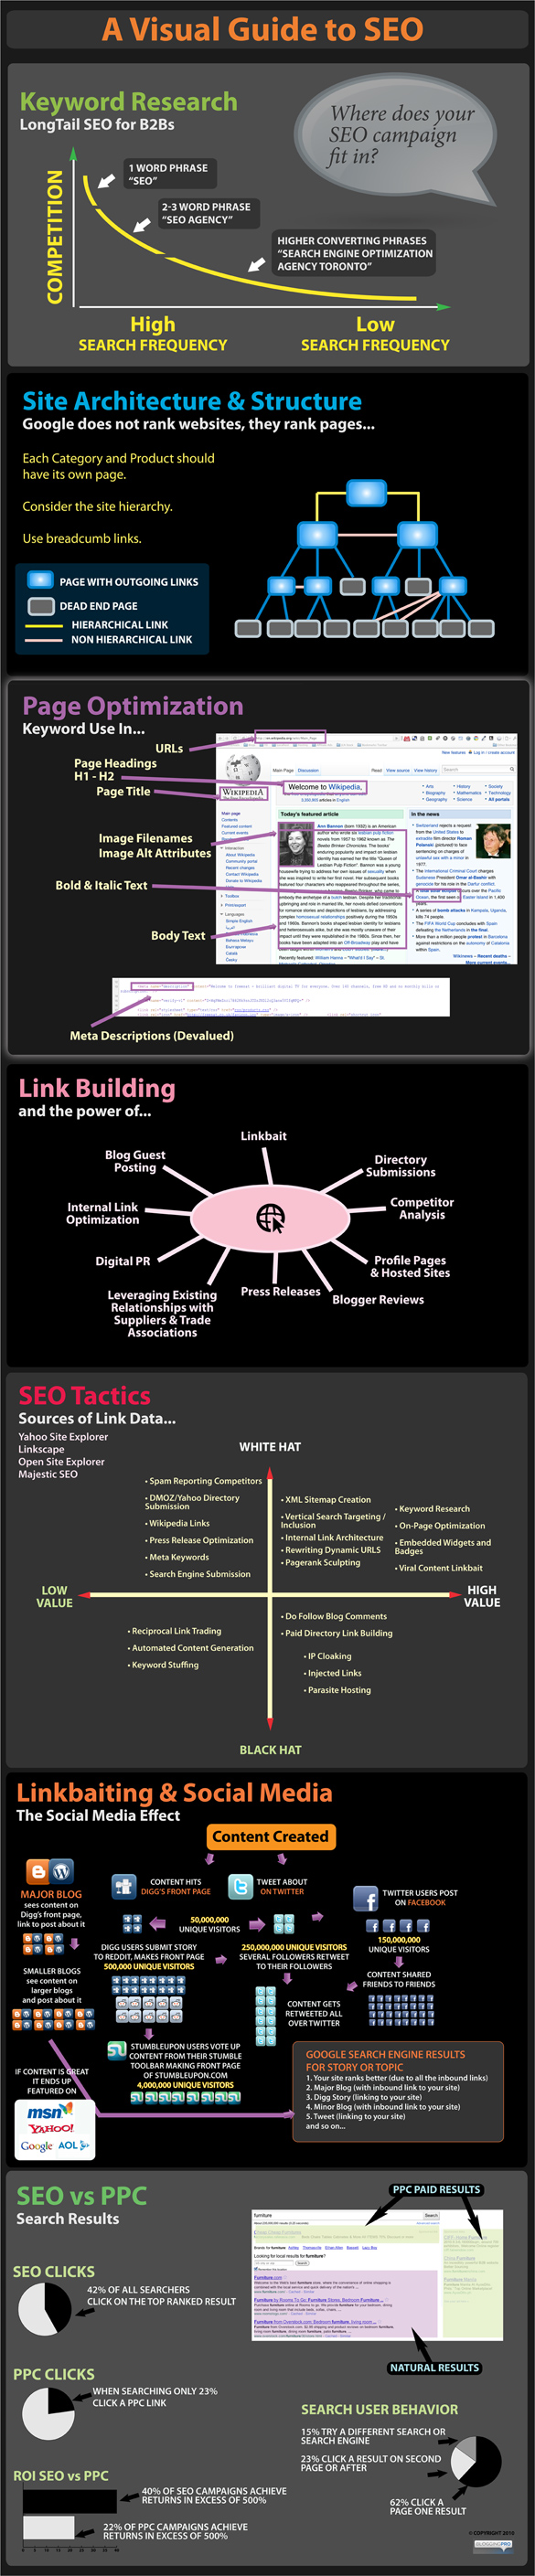 complete guide to seo infographic w585 Search engine optimization (SEO) made easy guide!